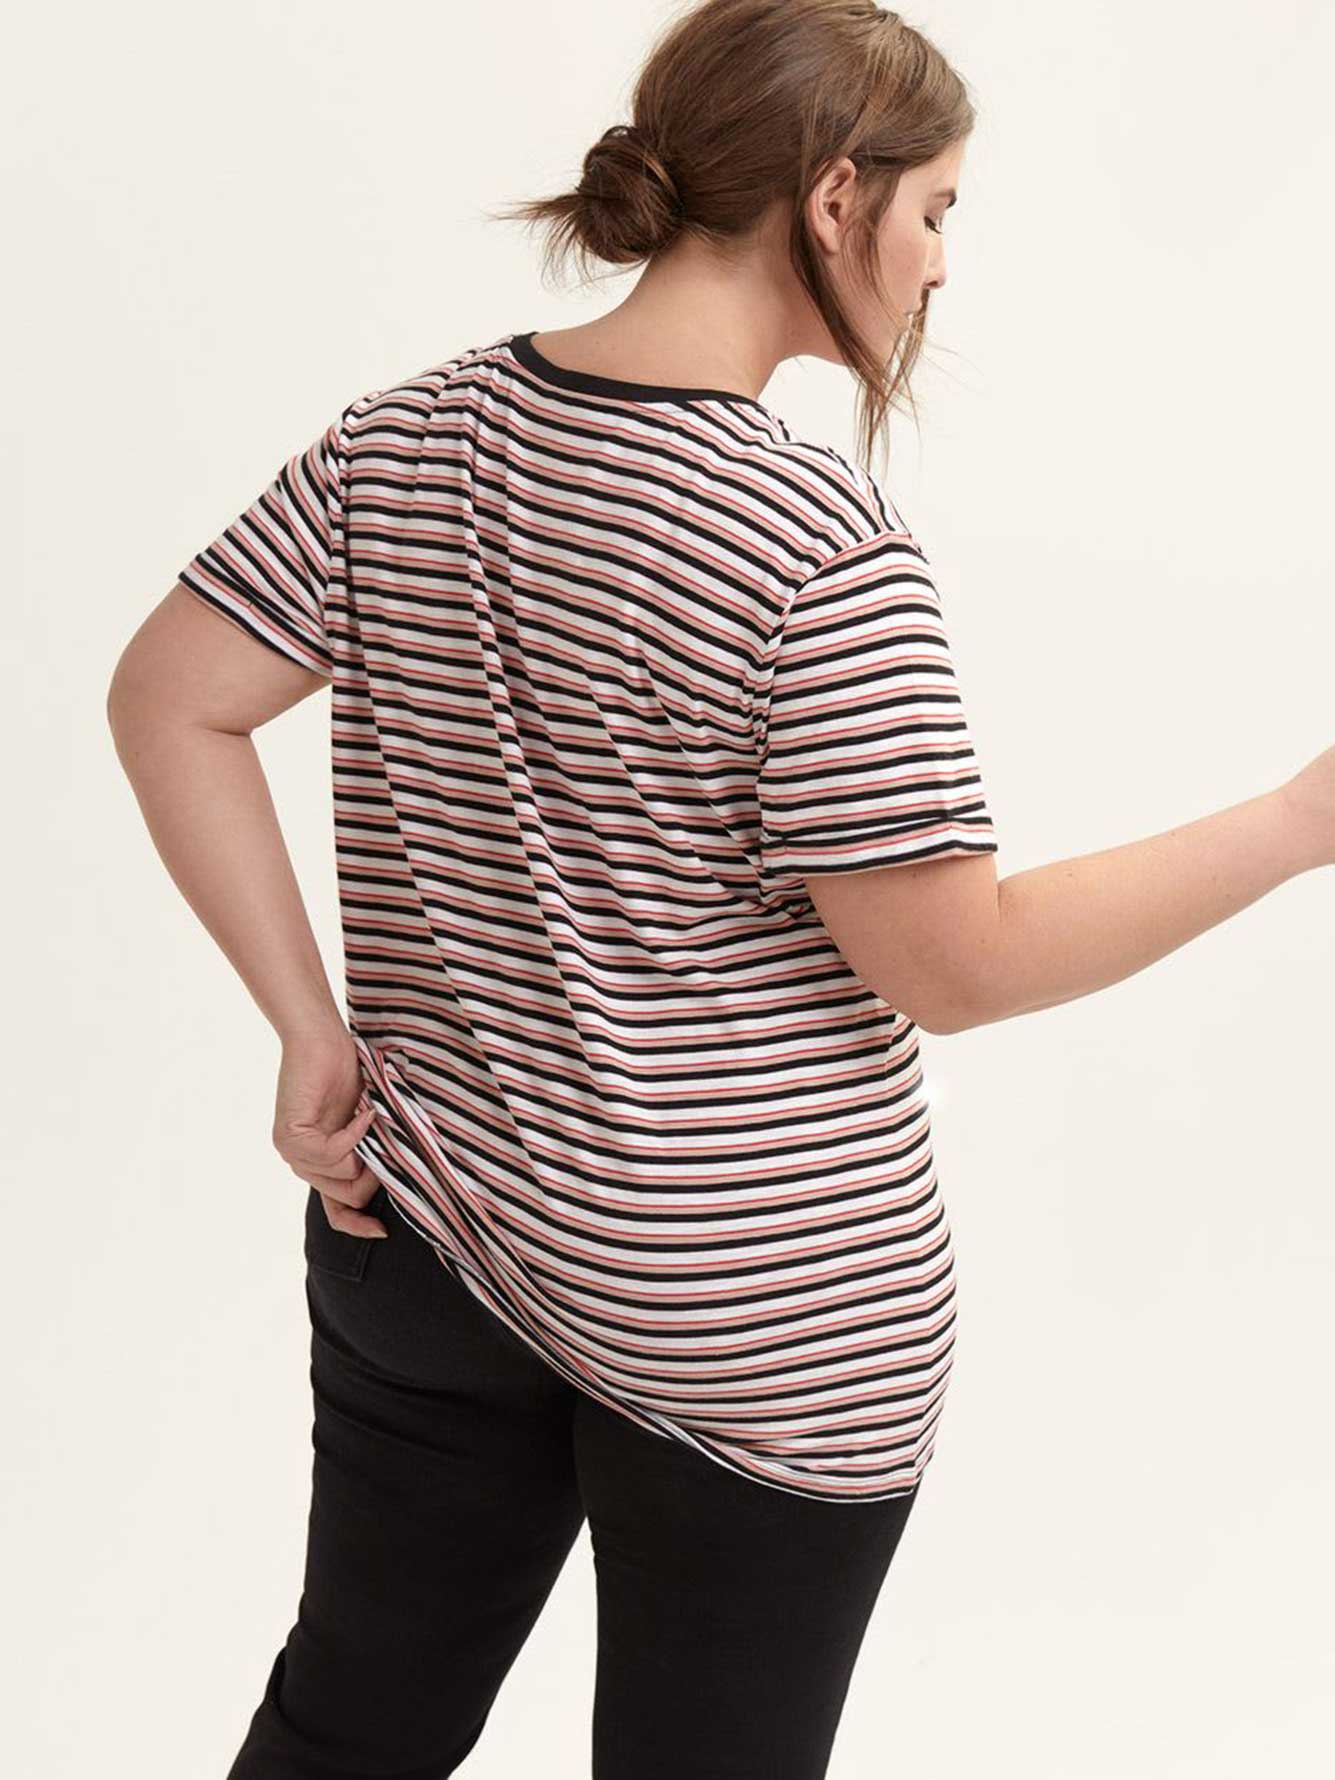 Striped Boyfriend V-Neck T-Shirt - L&L- L&L